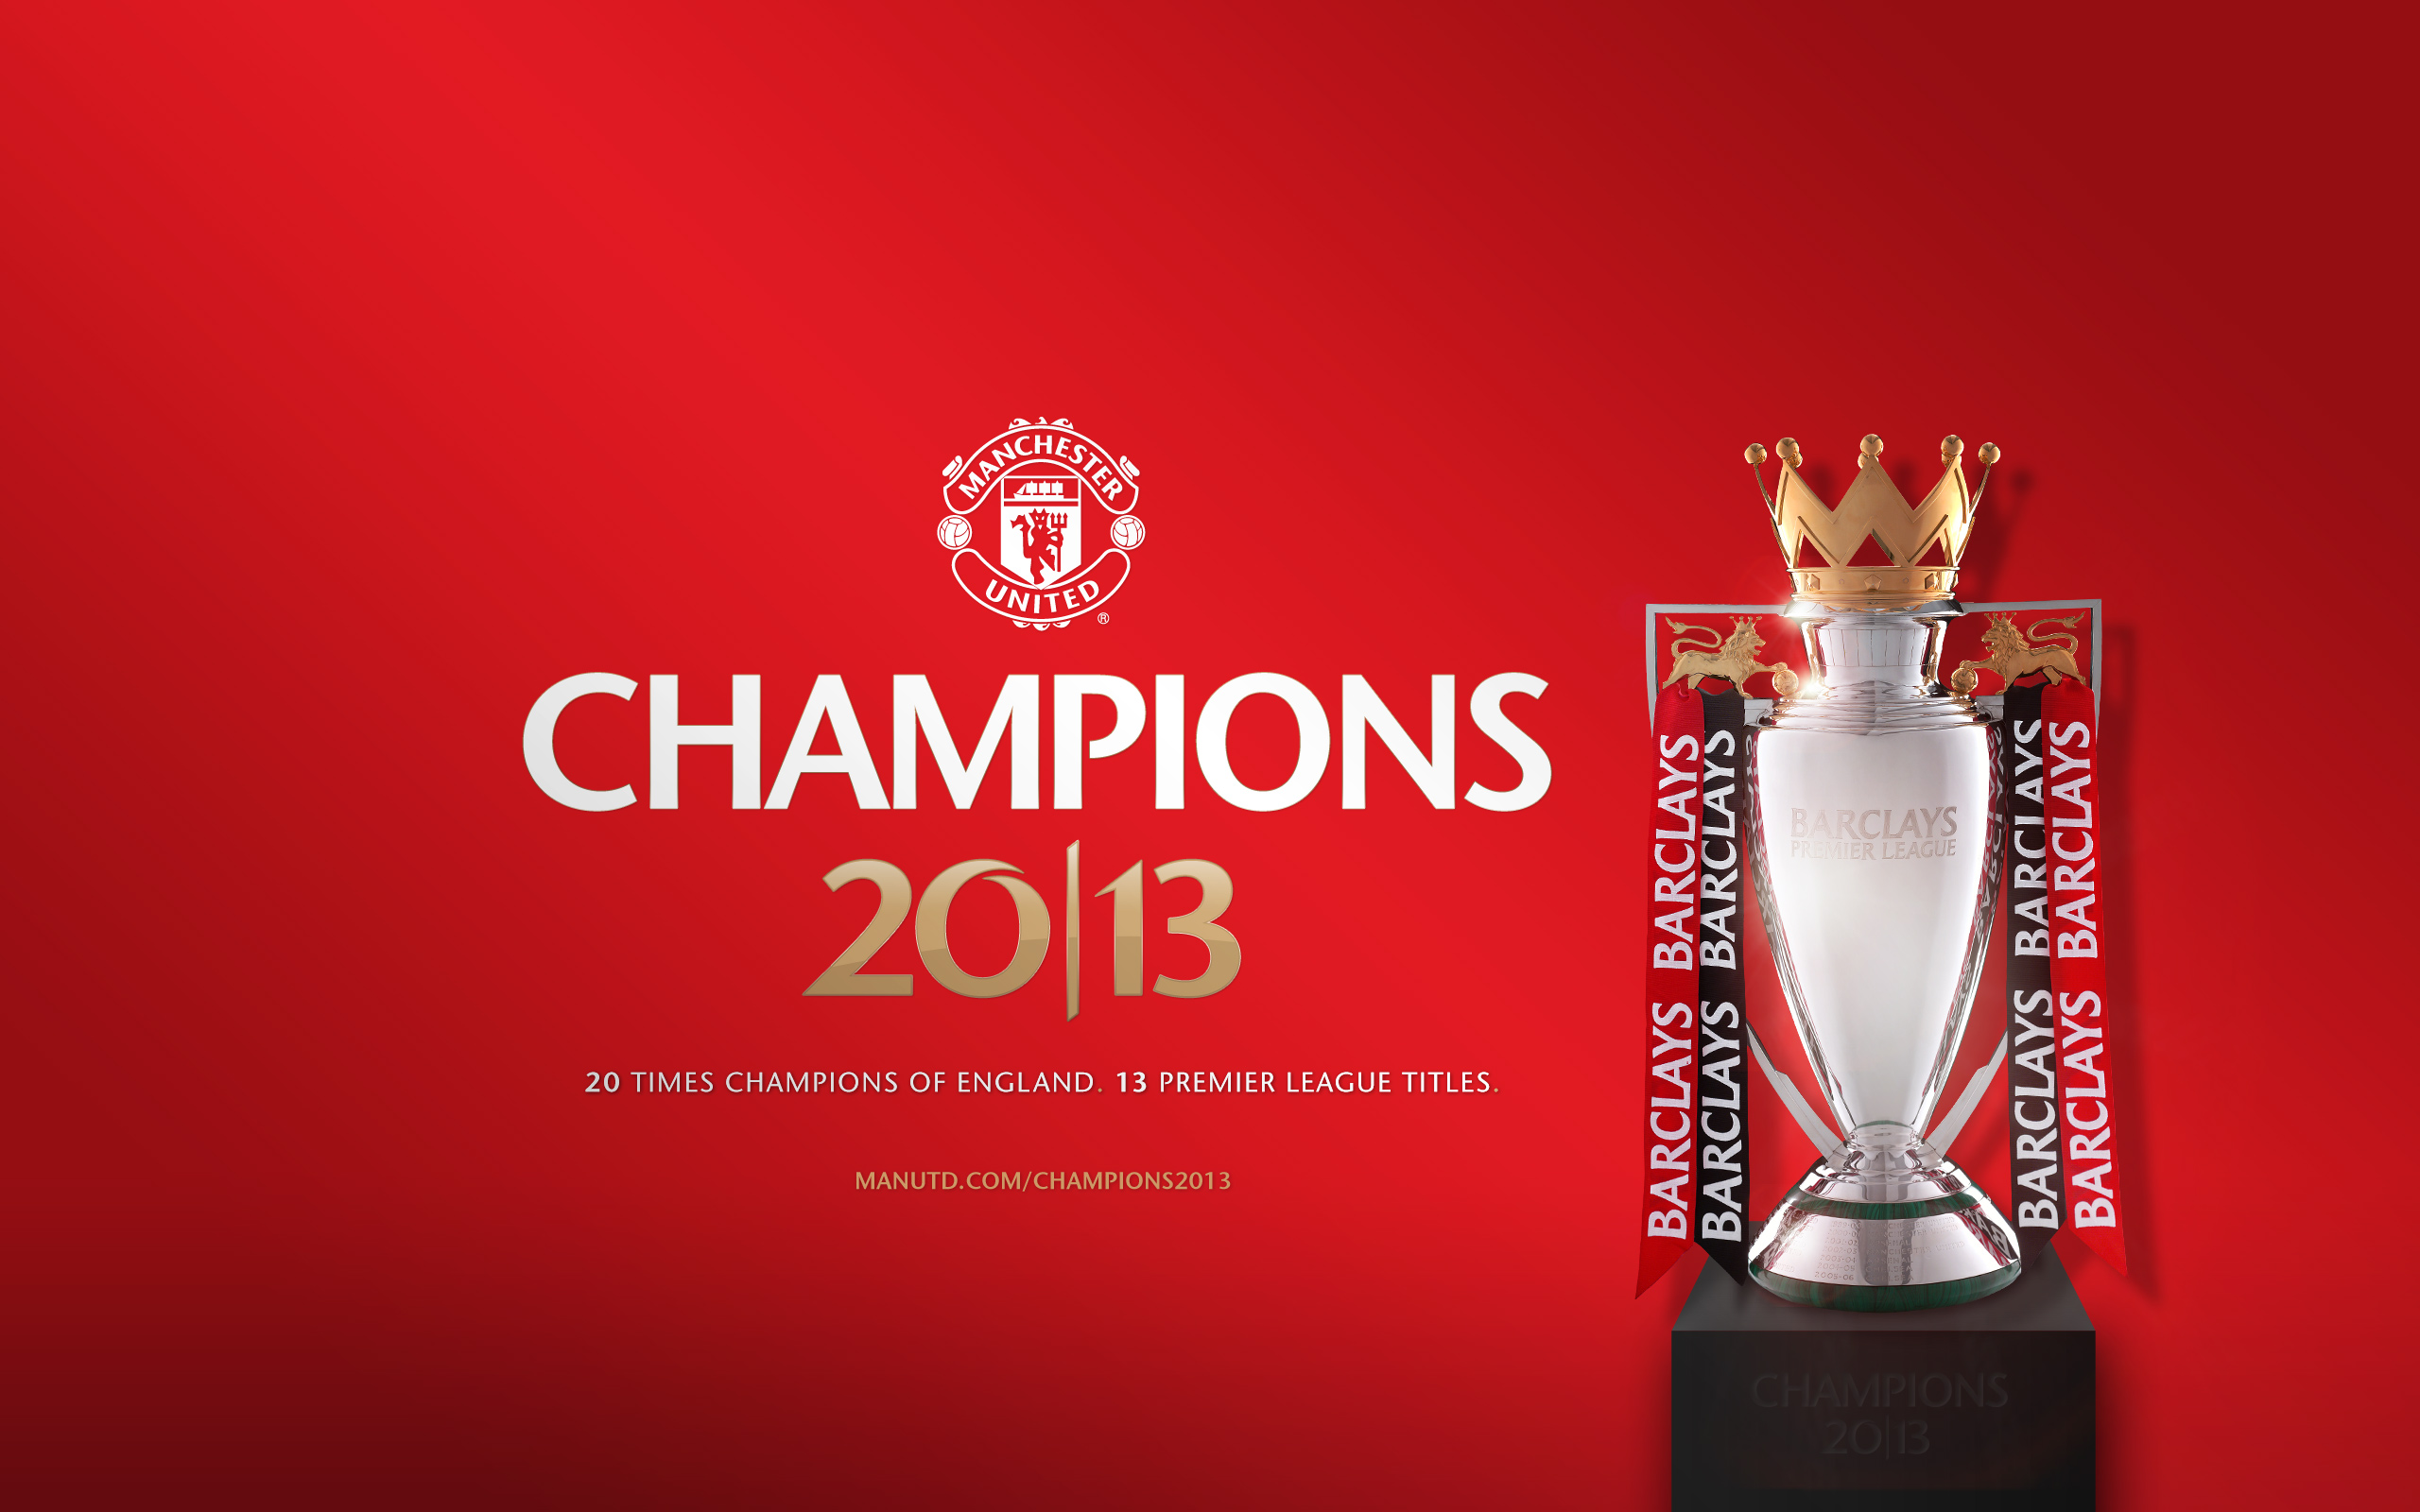 Manchester United Wallpaper 2015 Wallpaper with 2560x1600 Resolution 2560x1600